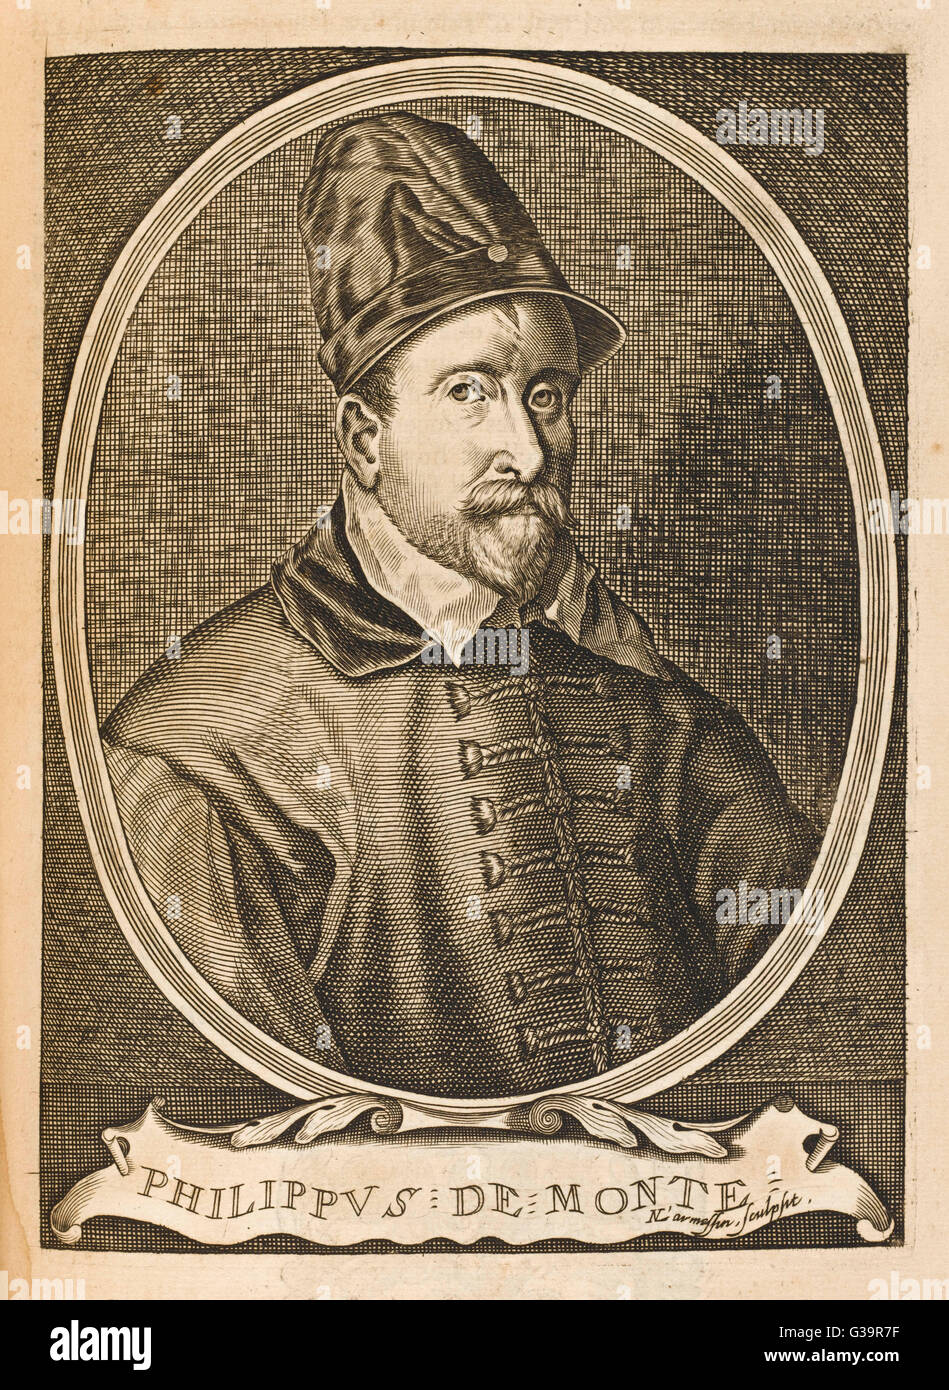 PHILIPPE DE MONTE  Flemish musician, wrote masses  and motets, visited Austria  and England      Date: 1521 - 1603 - Stock Image